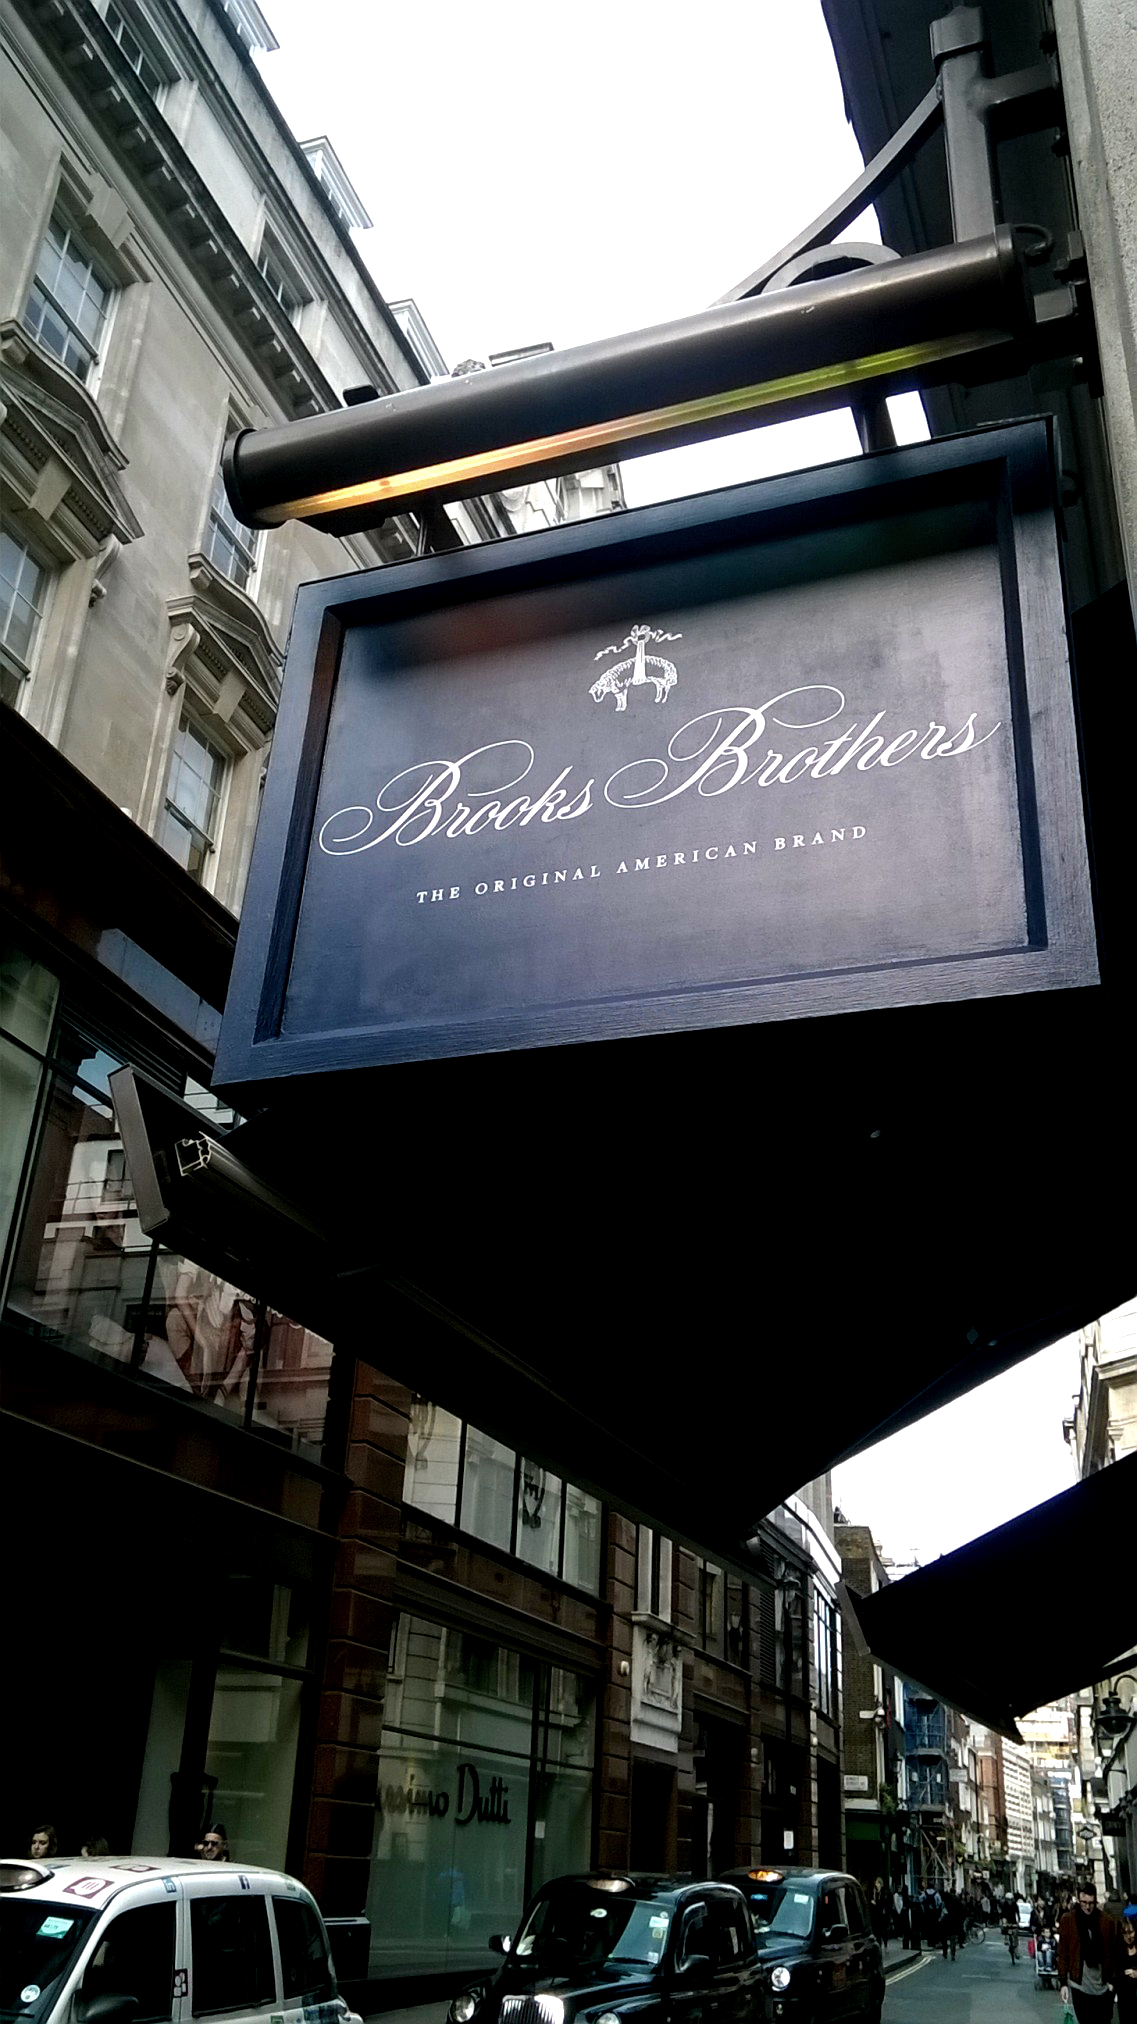 Door Signs Brooks Brothers Regent Street London E Signs ® installed sign www.e-signs.co.uk